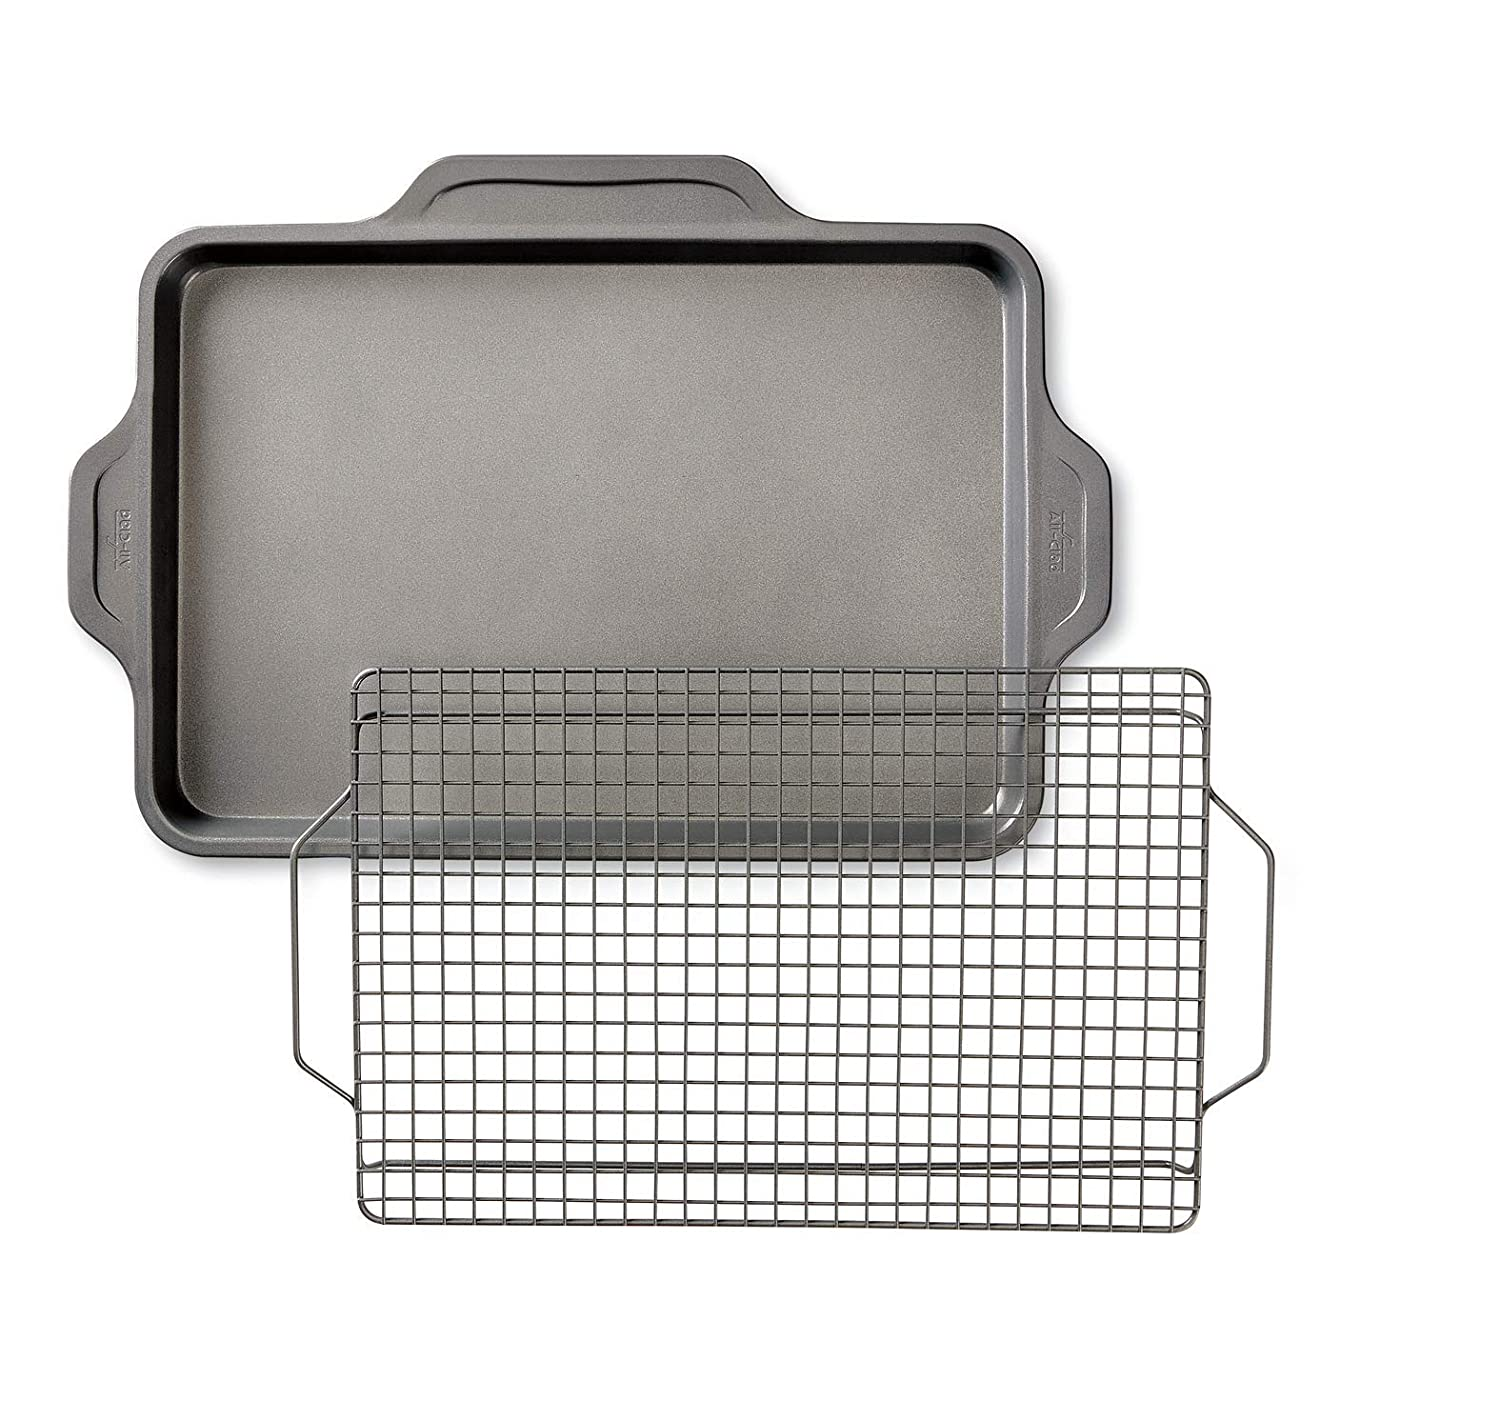 All-Clad J257S264 Pro-Release bakeware sheet with rack, 21 In x 14.25 In x 2 In, Grey